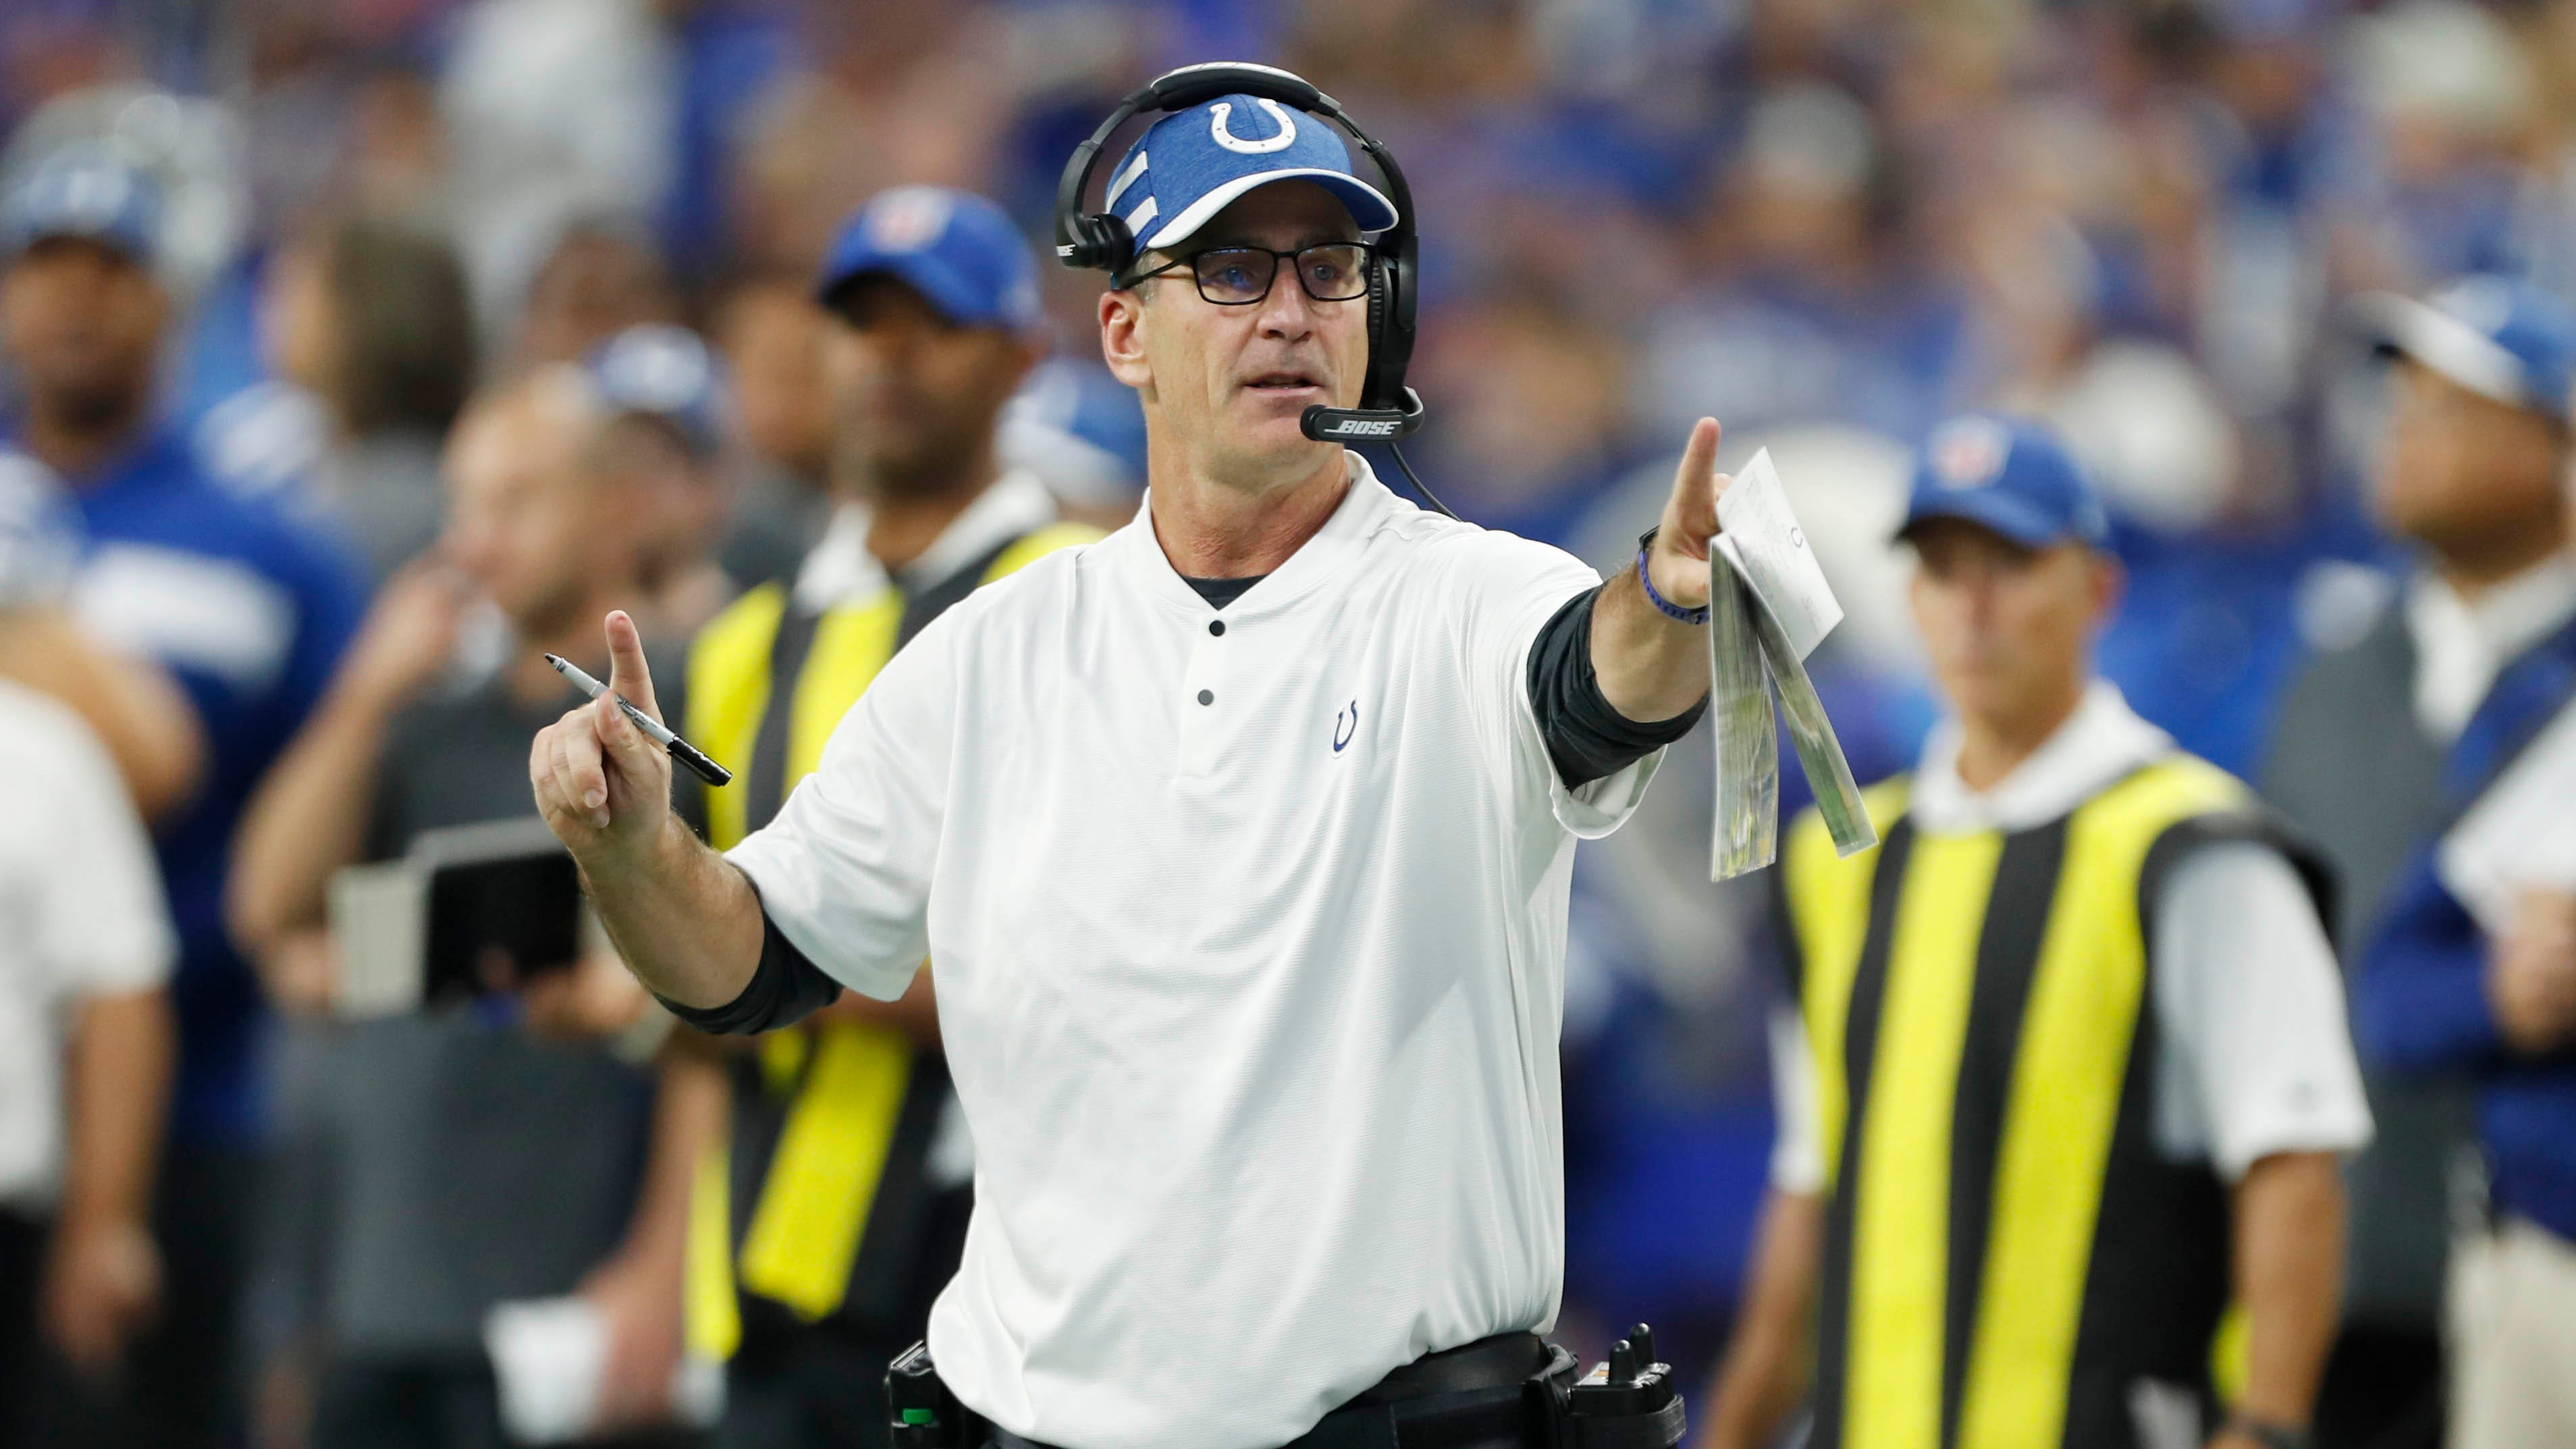 Indianapolis Colts play the Philadelphia Eagles in NFL Week 3 action